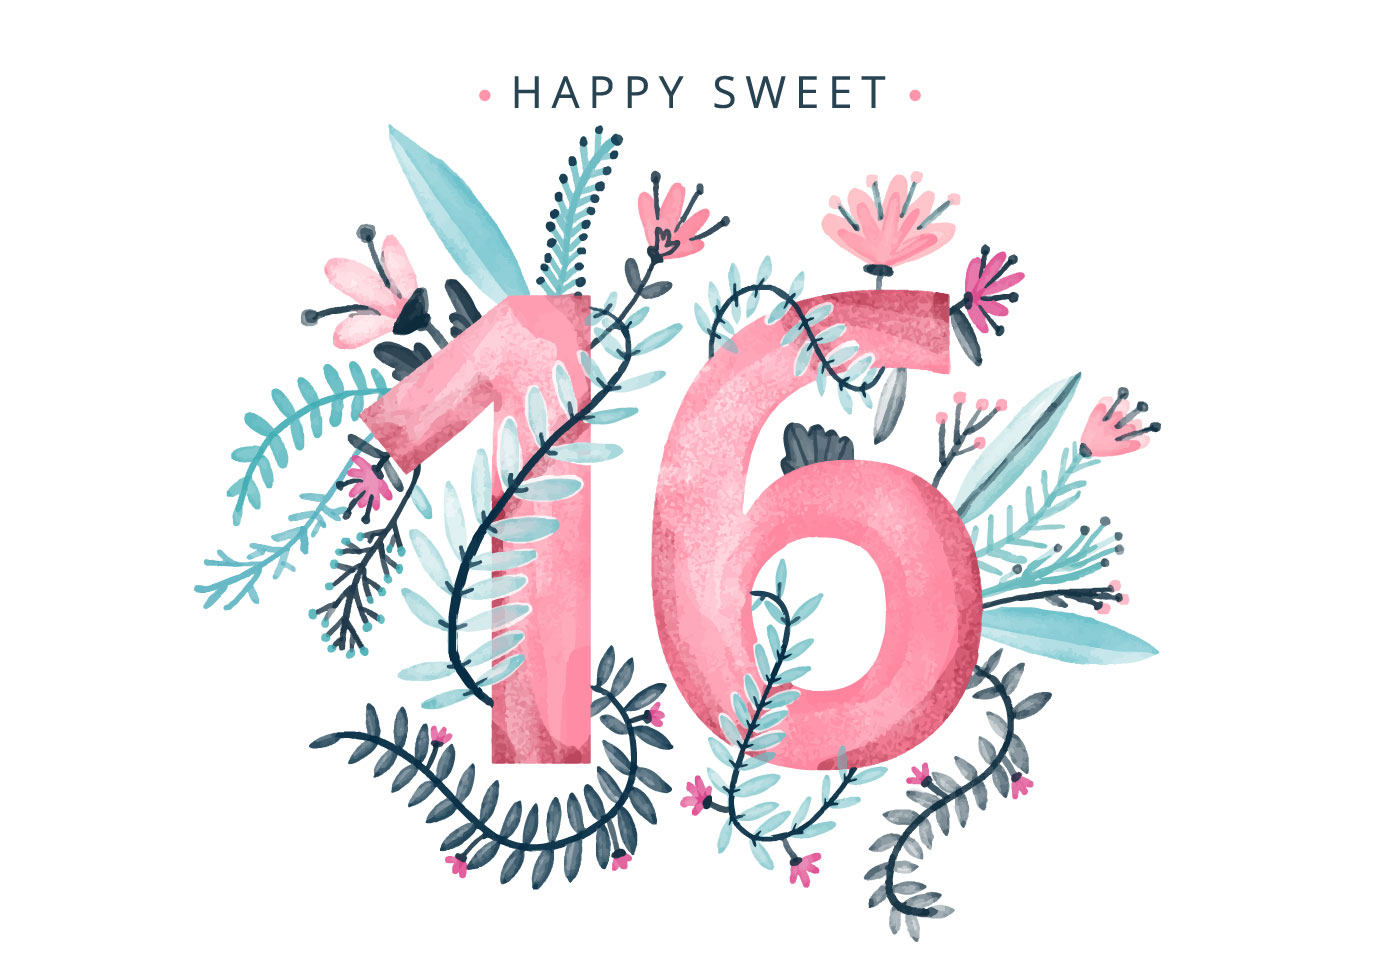 Sweet 16 Watercolor Background - Download Free Vector Art ...